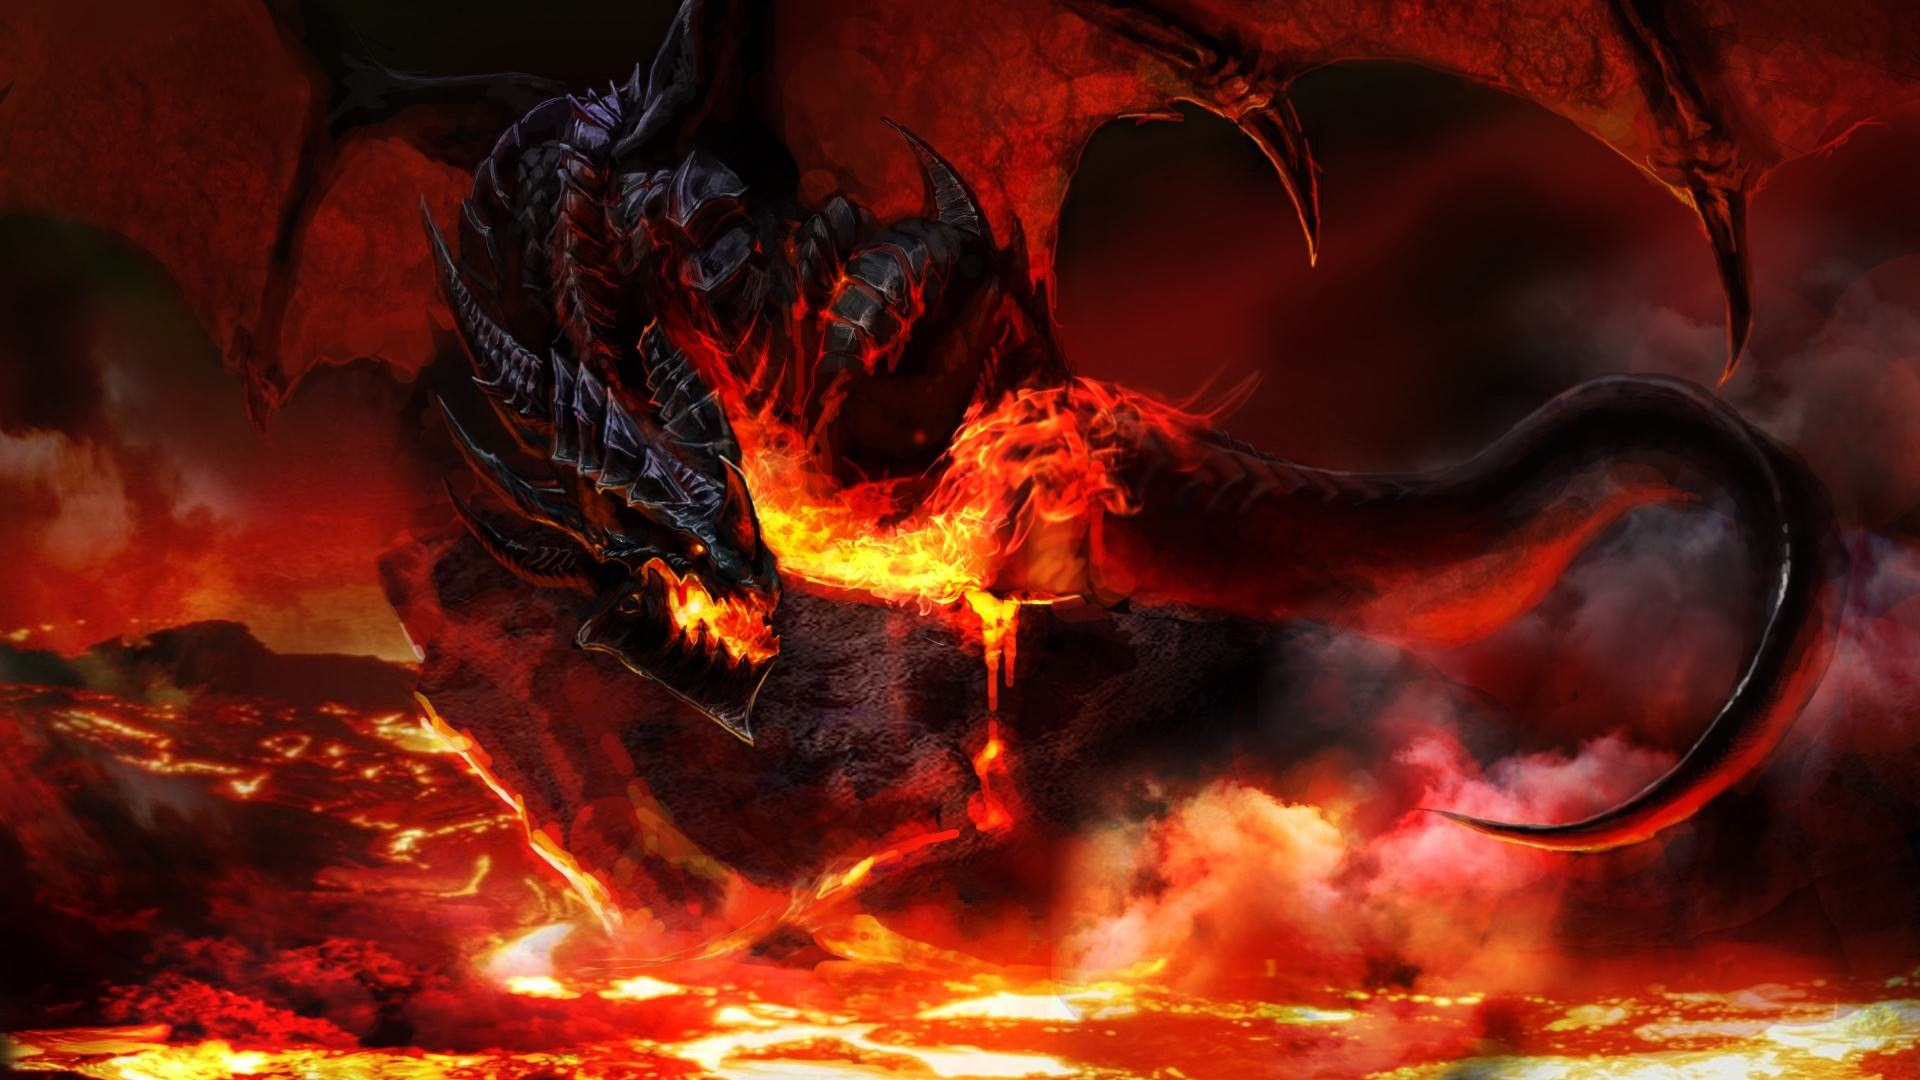 1920x1080 hd dragon wallpapers top free 1920x1080 hd - Dragon backgrounds 1920x1080 ...